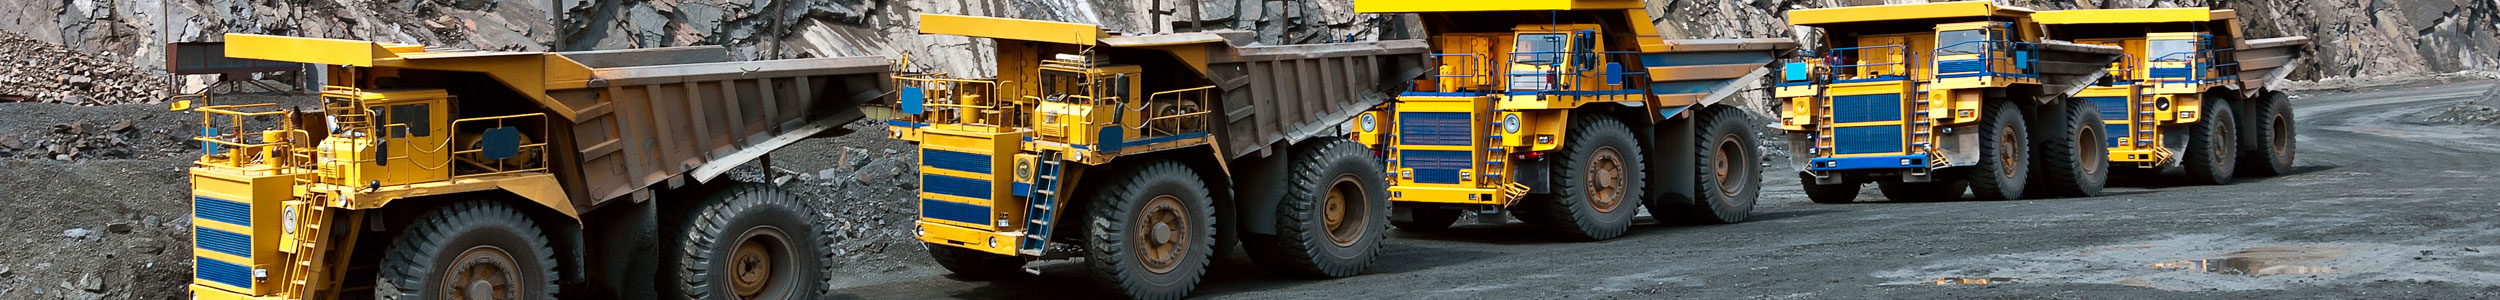 IT Support & Services Perth for Mining